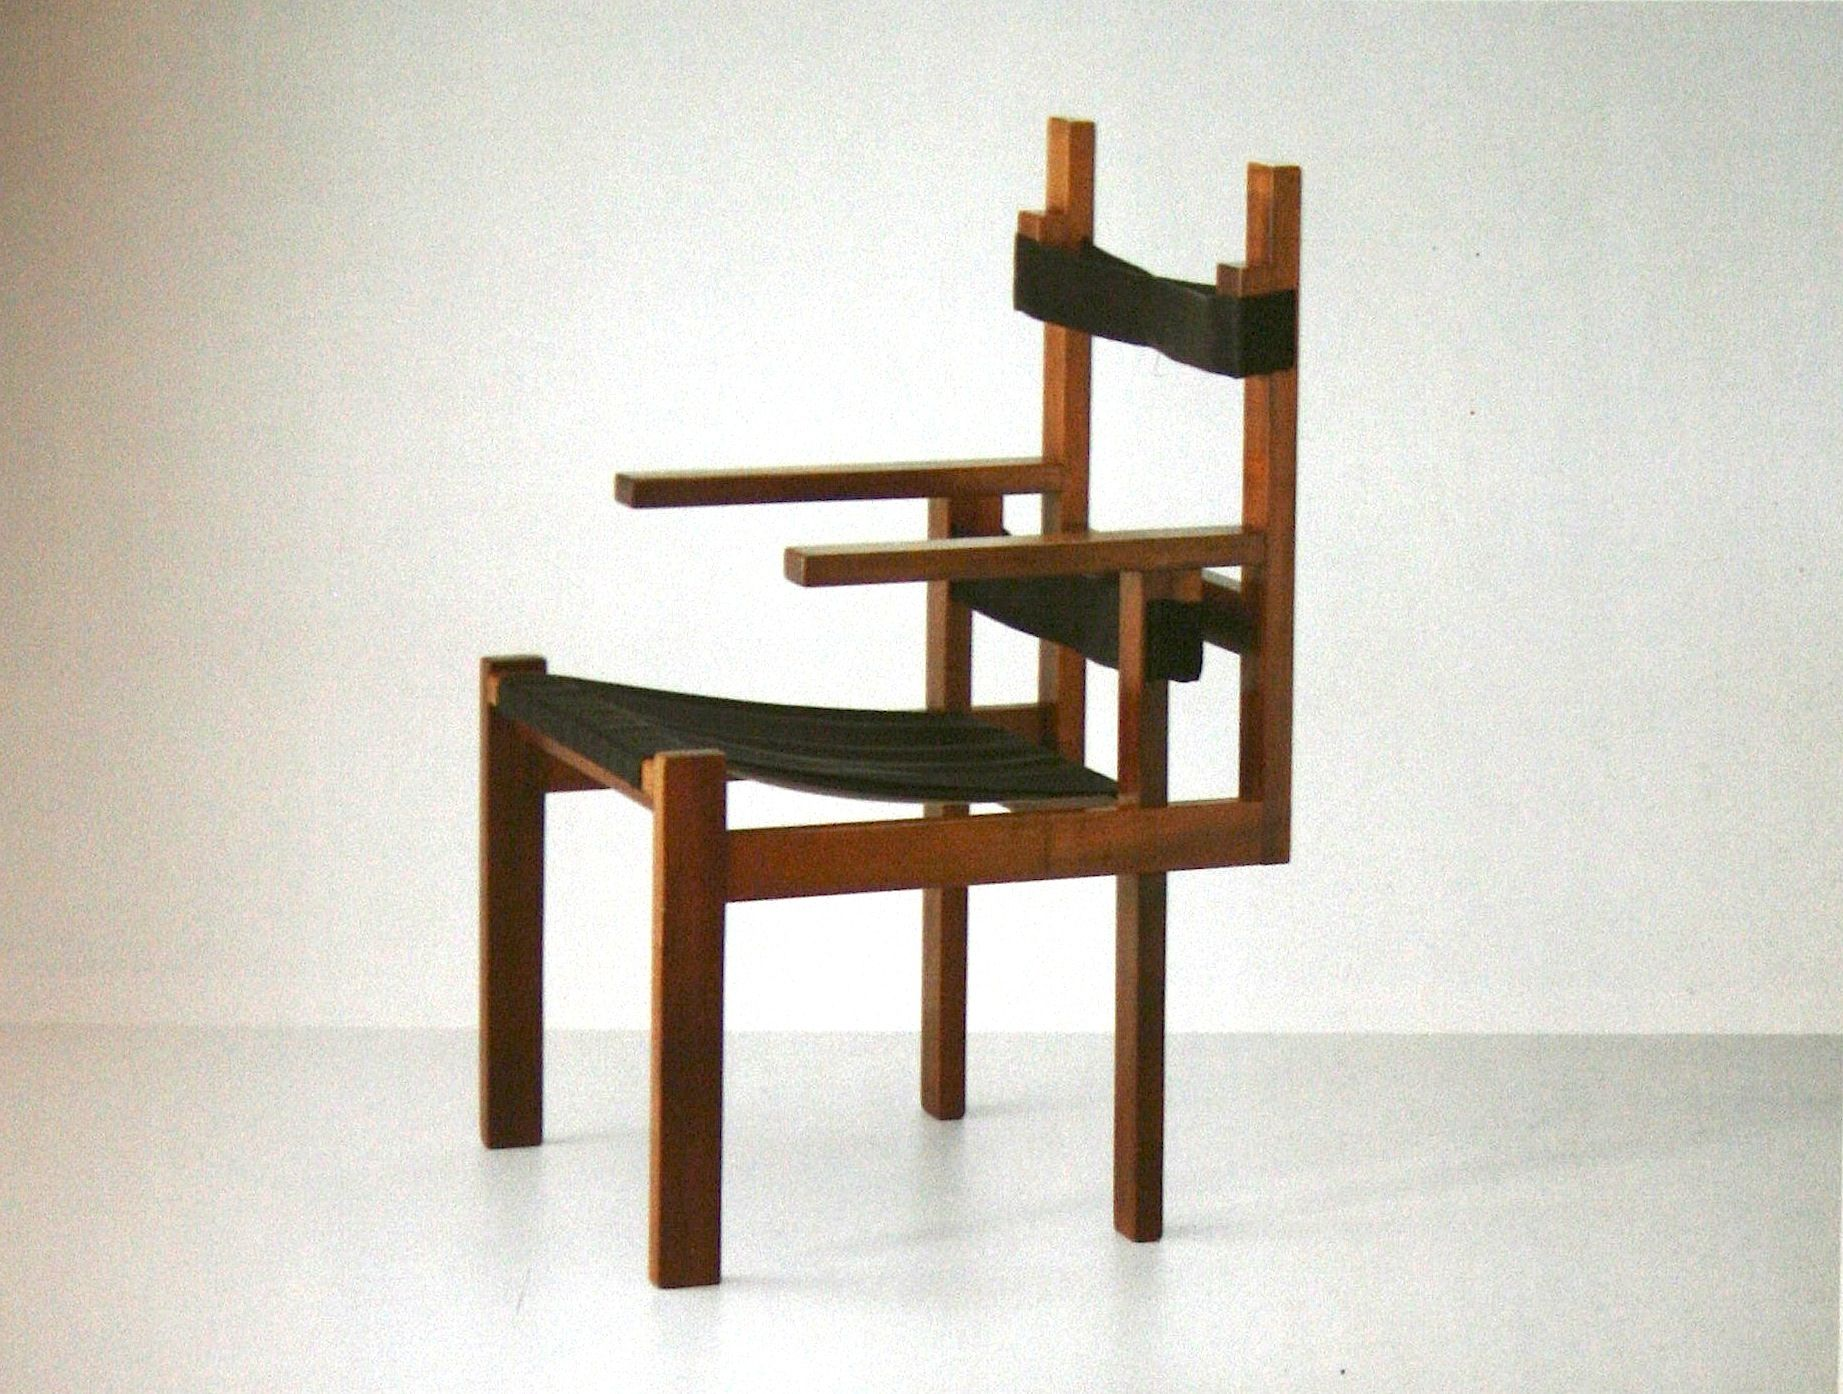 Marcel Breuer wood slat chair HISTORY OF INTERIORS